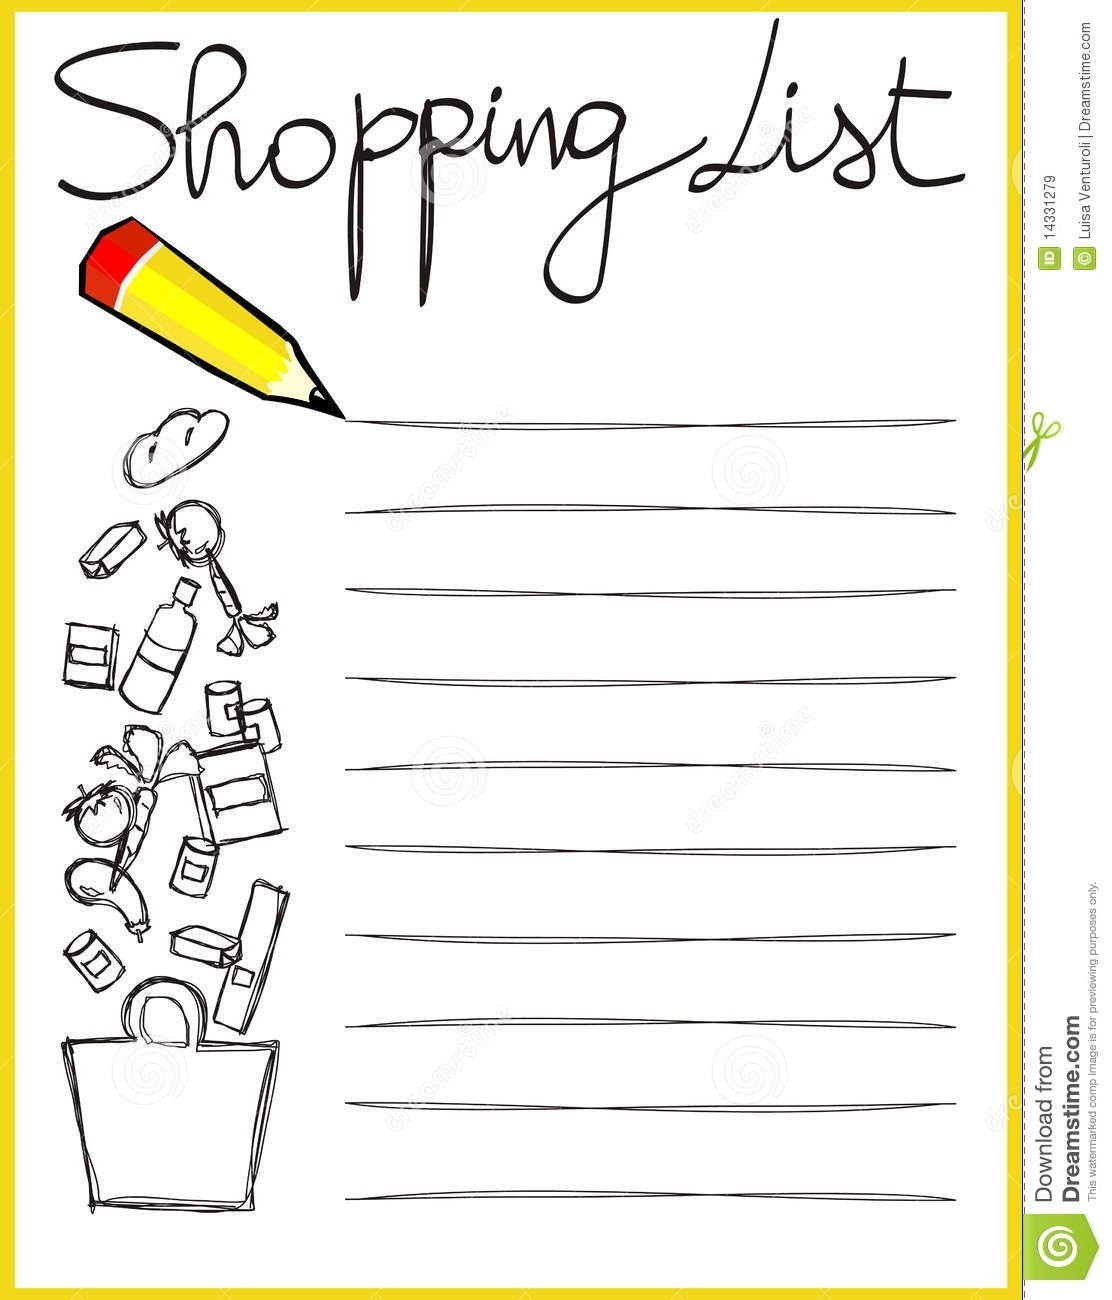 Shopping List Stock Vector. Illustration Of Memos, Tomato - 14331279 with Shopping List Clipart 20308